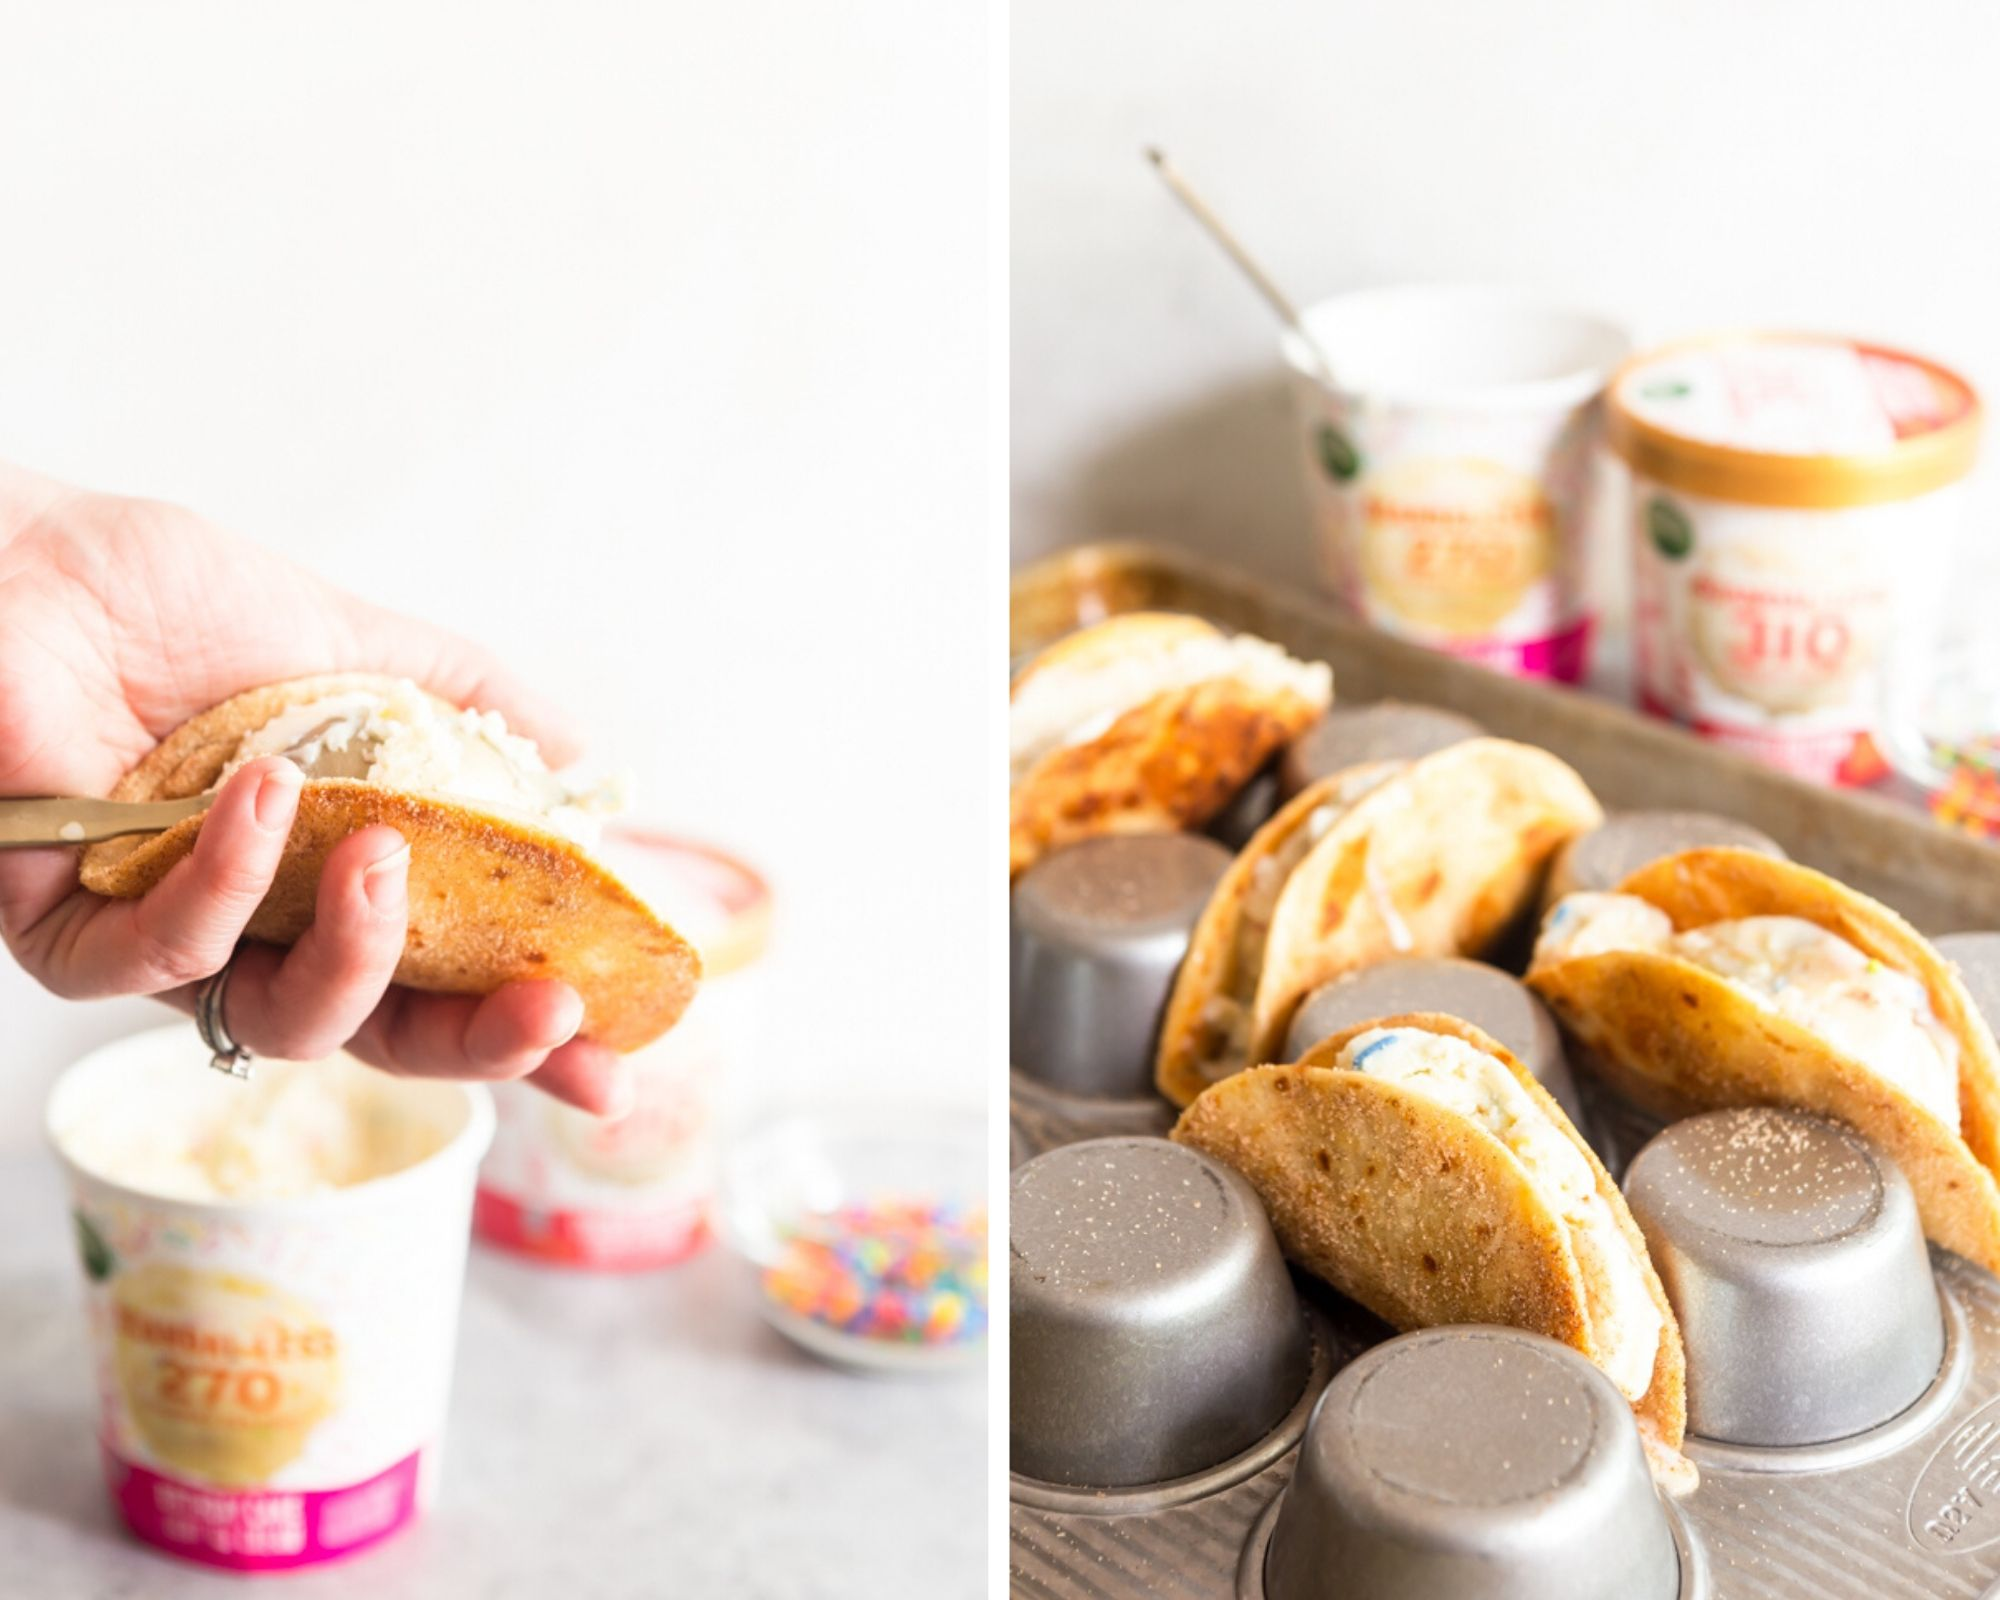 Collage image of filling tortilla with ice cream and ice cream tacos sitting in an upside down muffin tin.